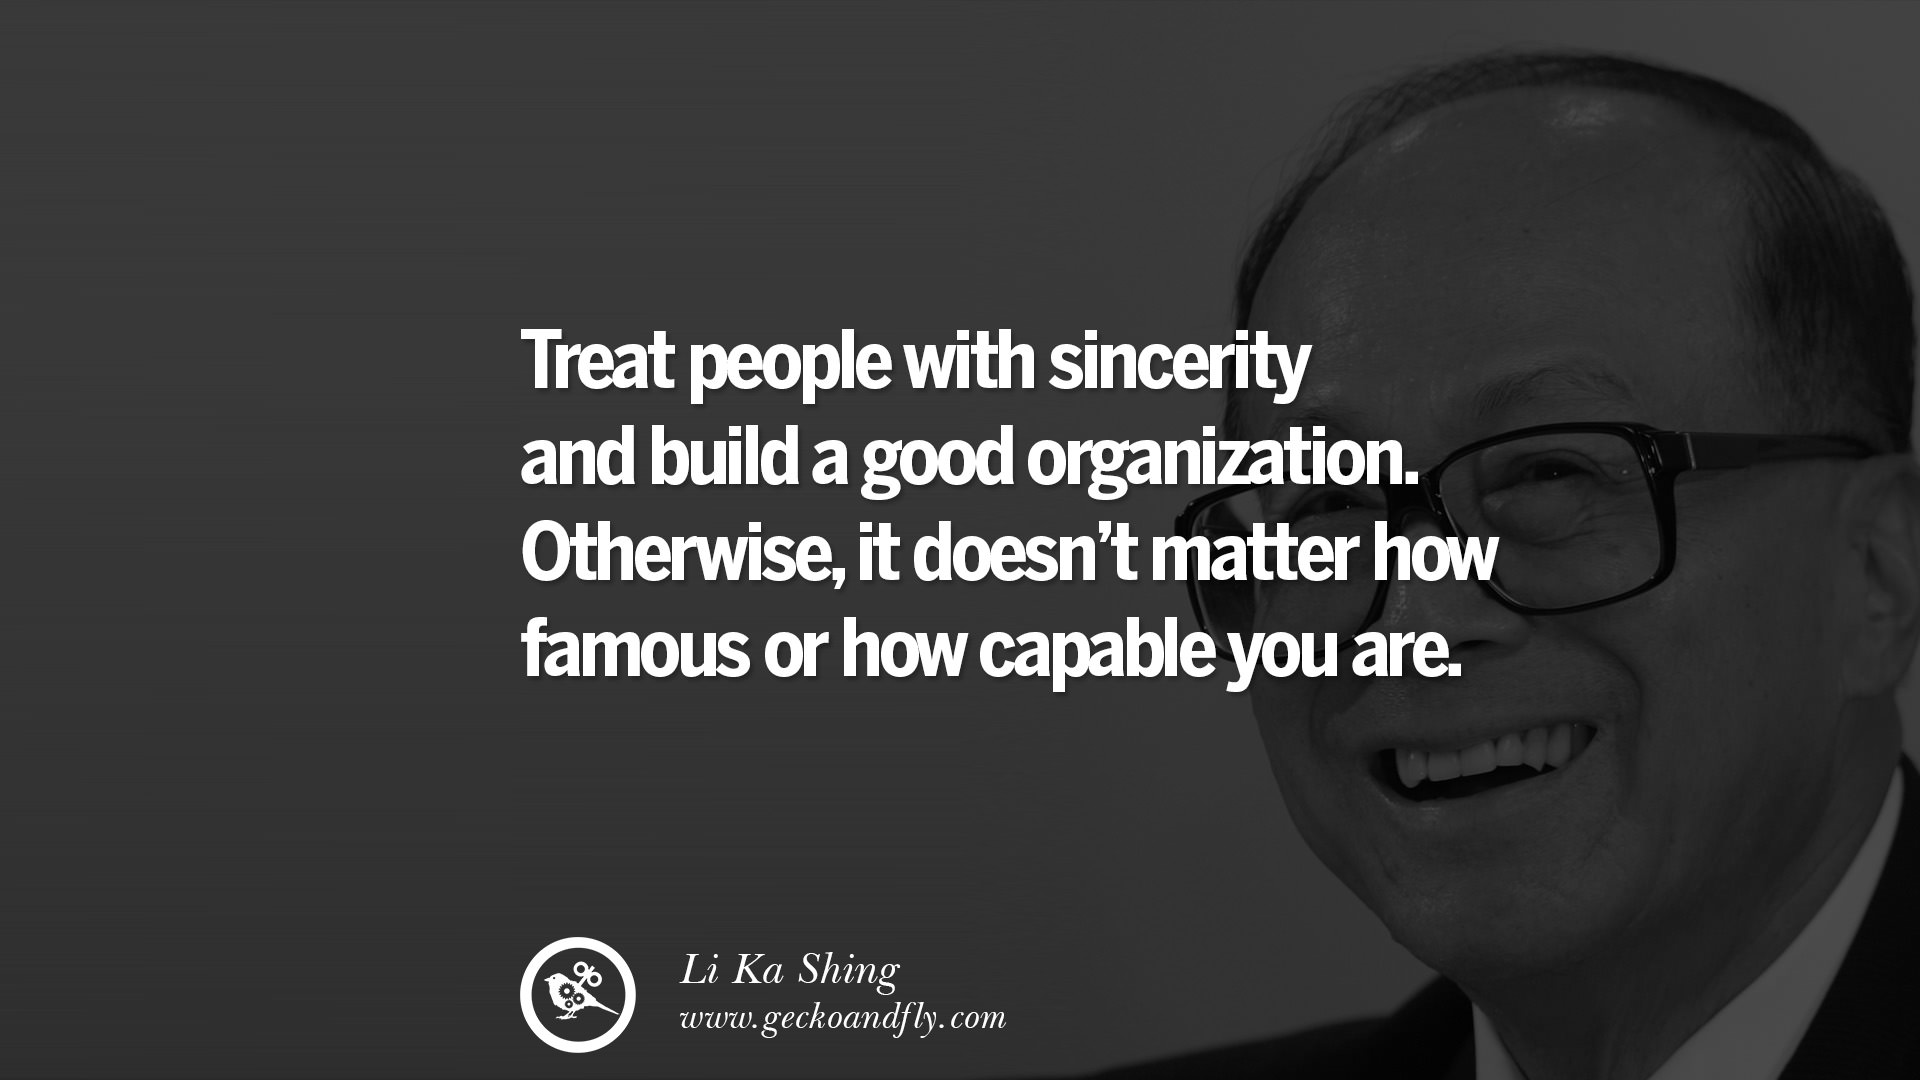 Inspirational Quotes About Music And Life 12 Inspiring Li Ka Shing Life Lessons And Business Quotes